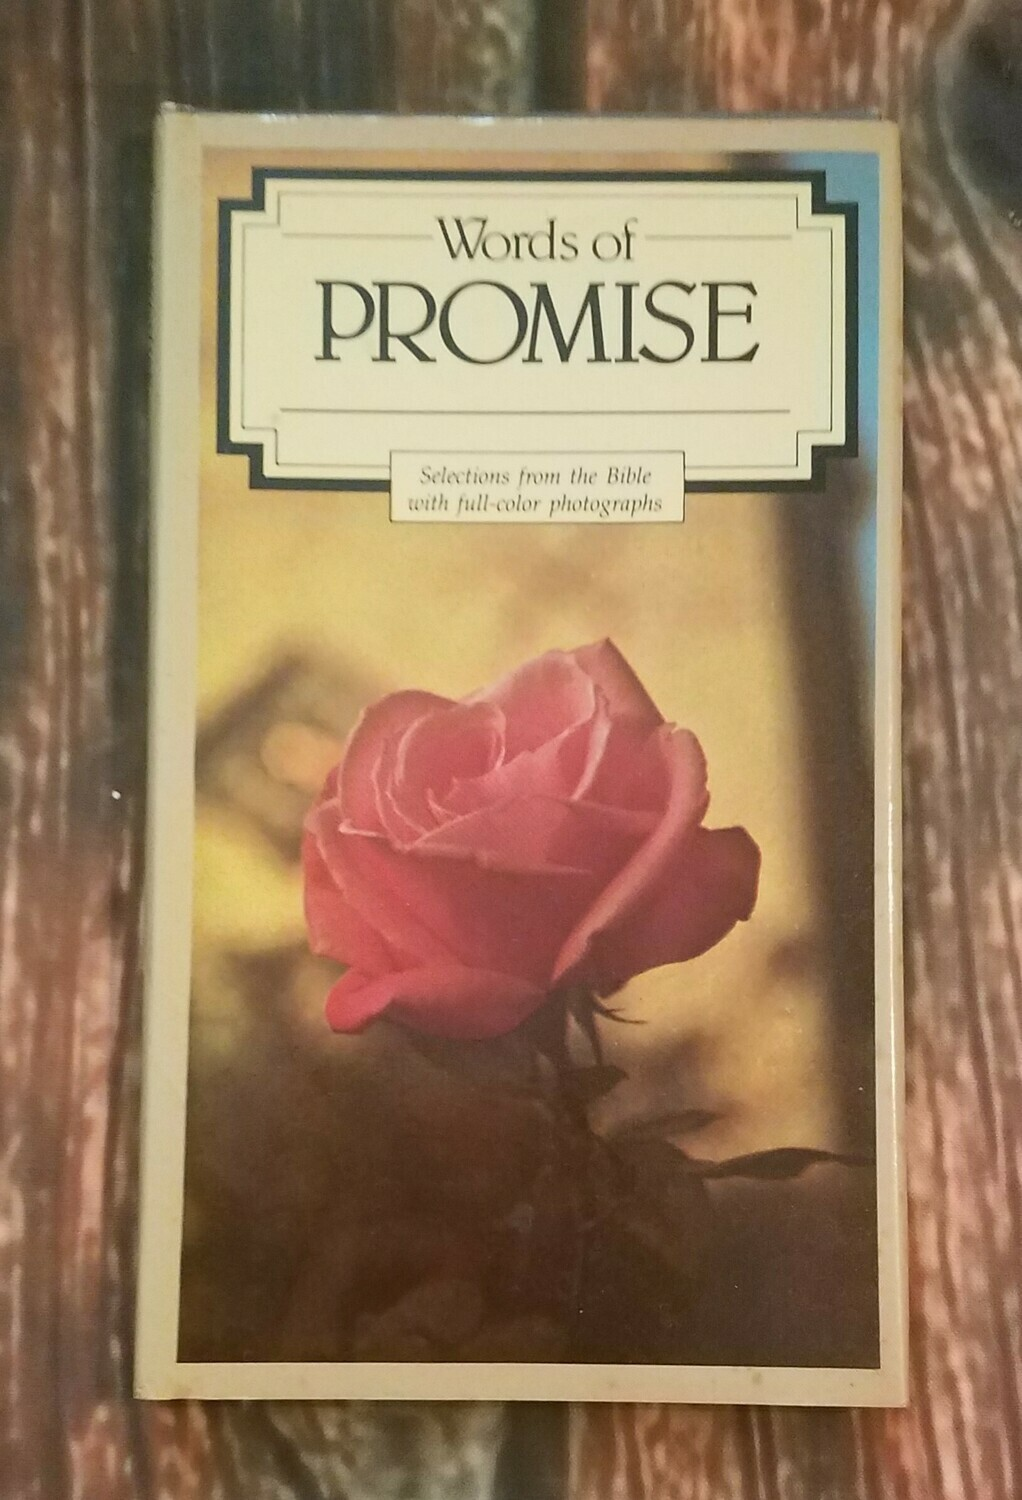 Words of Promise by Thomas Nelson